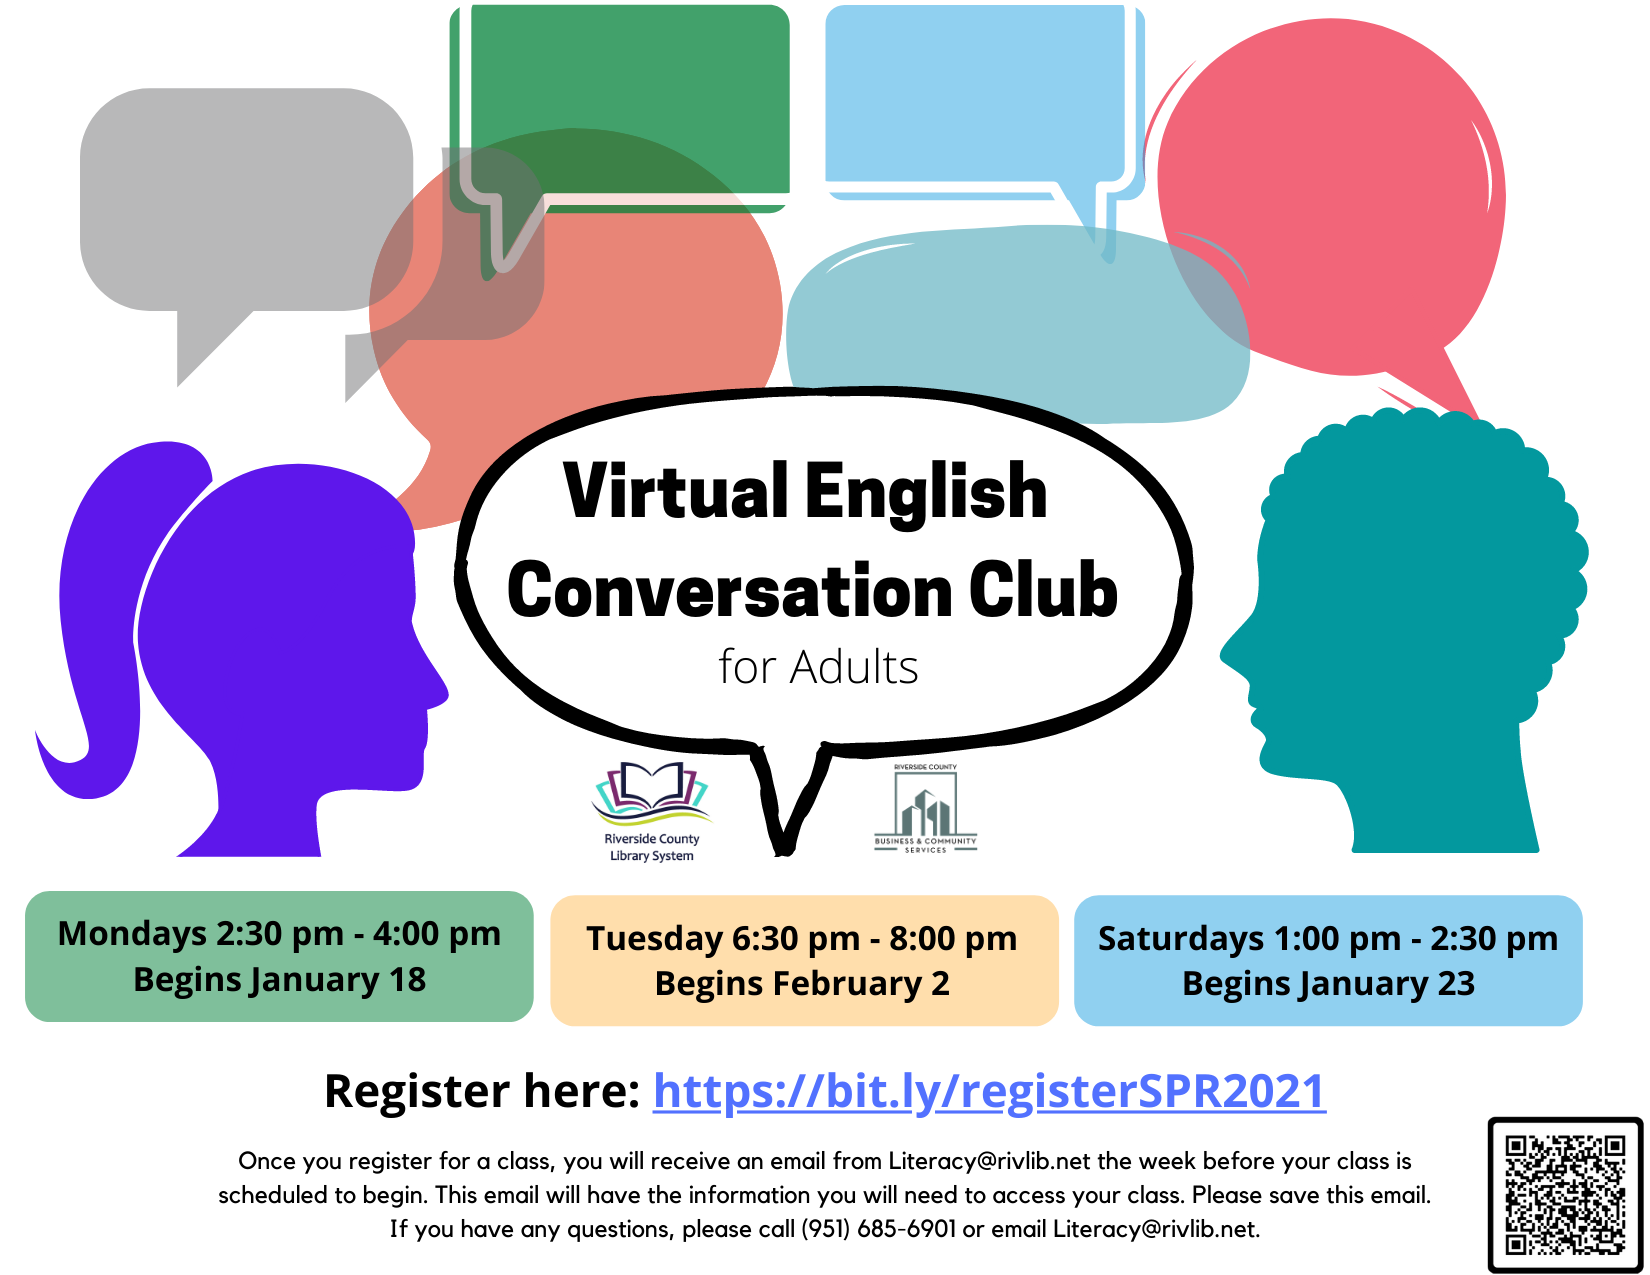 English Conversation Club flyer with class information.